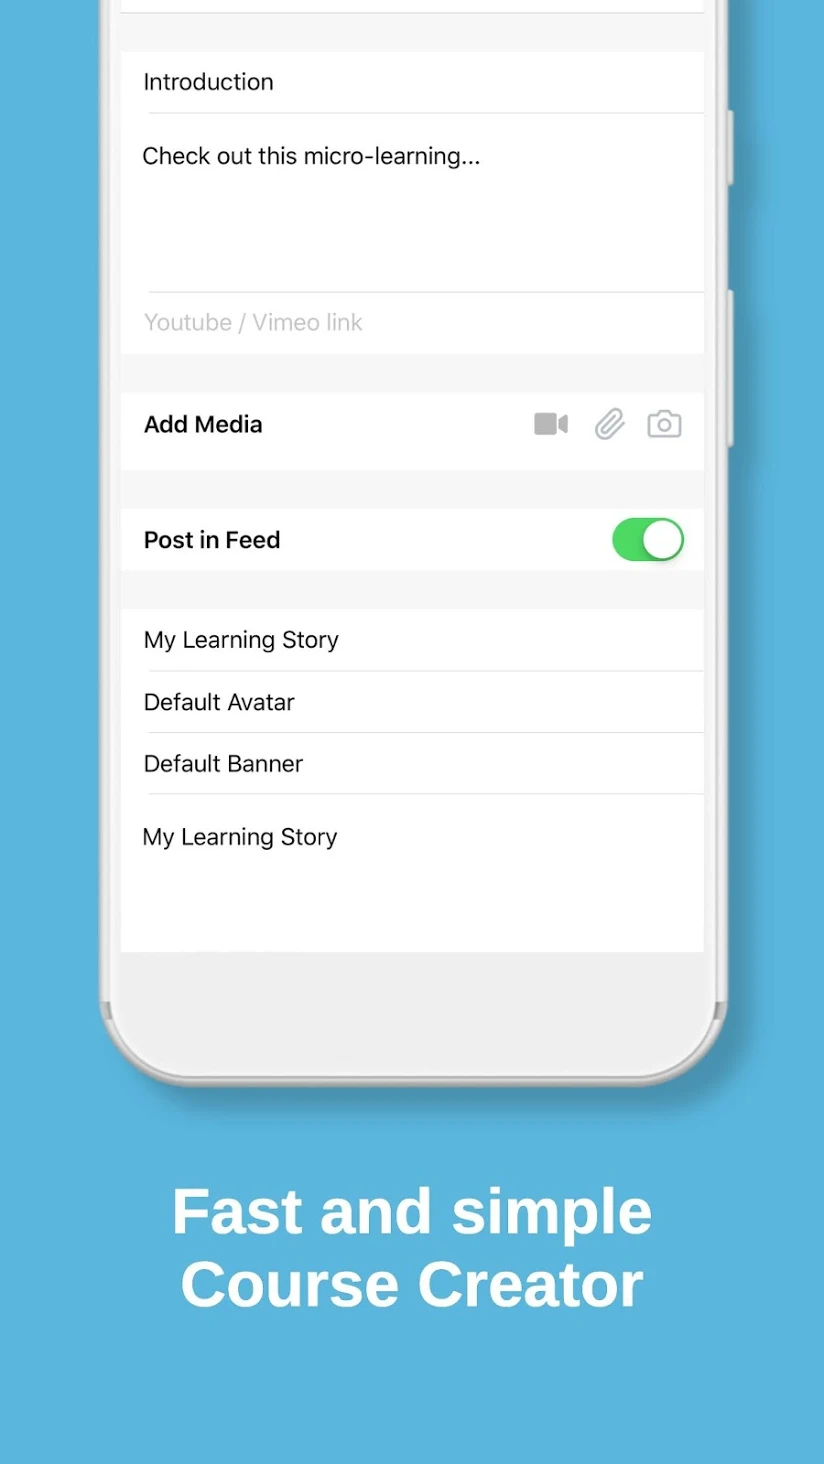 Opentute Software - Opentute Mobile Micro Learning